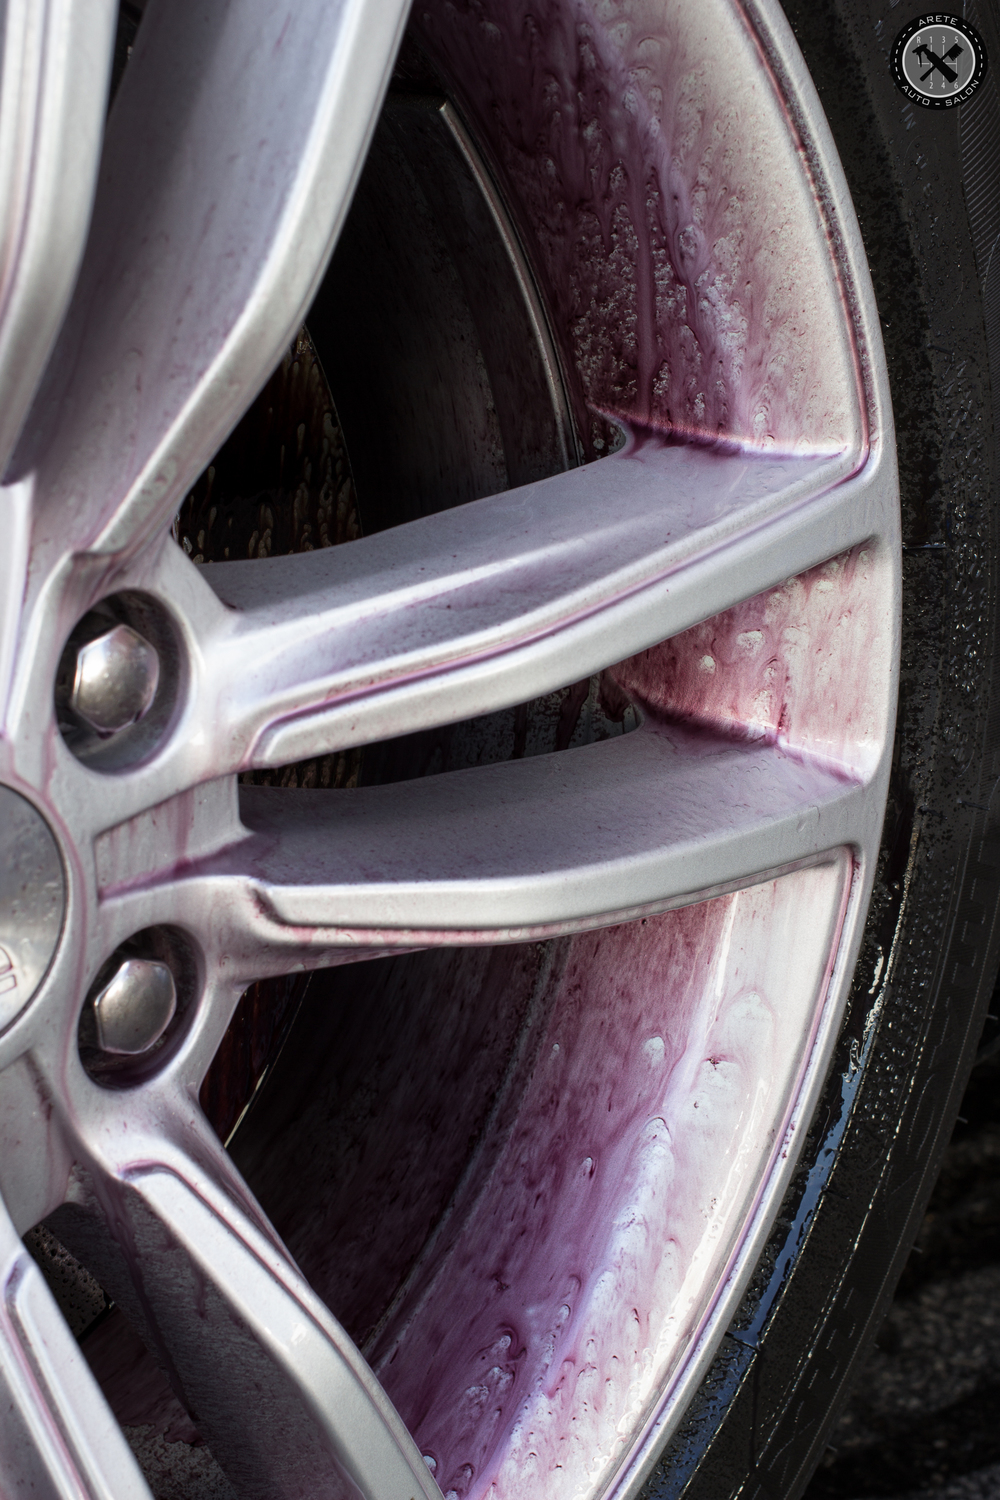 The wheel received a serious decontamination with Iron Remover prior to more intensive cleaning by hand.